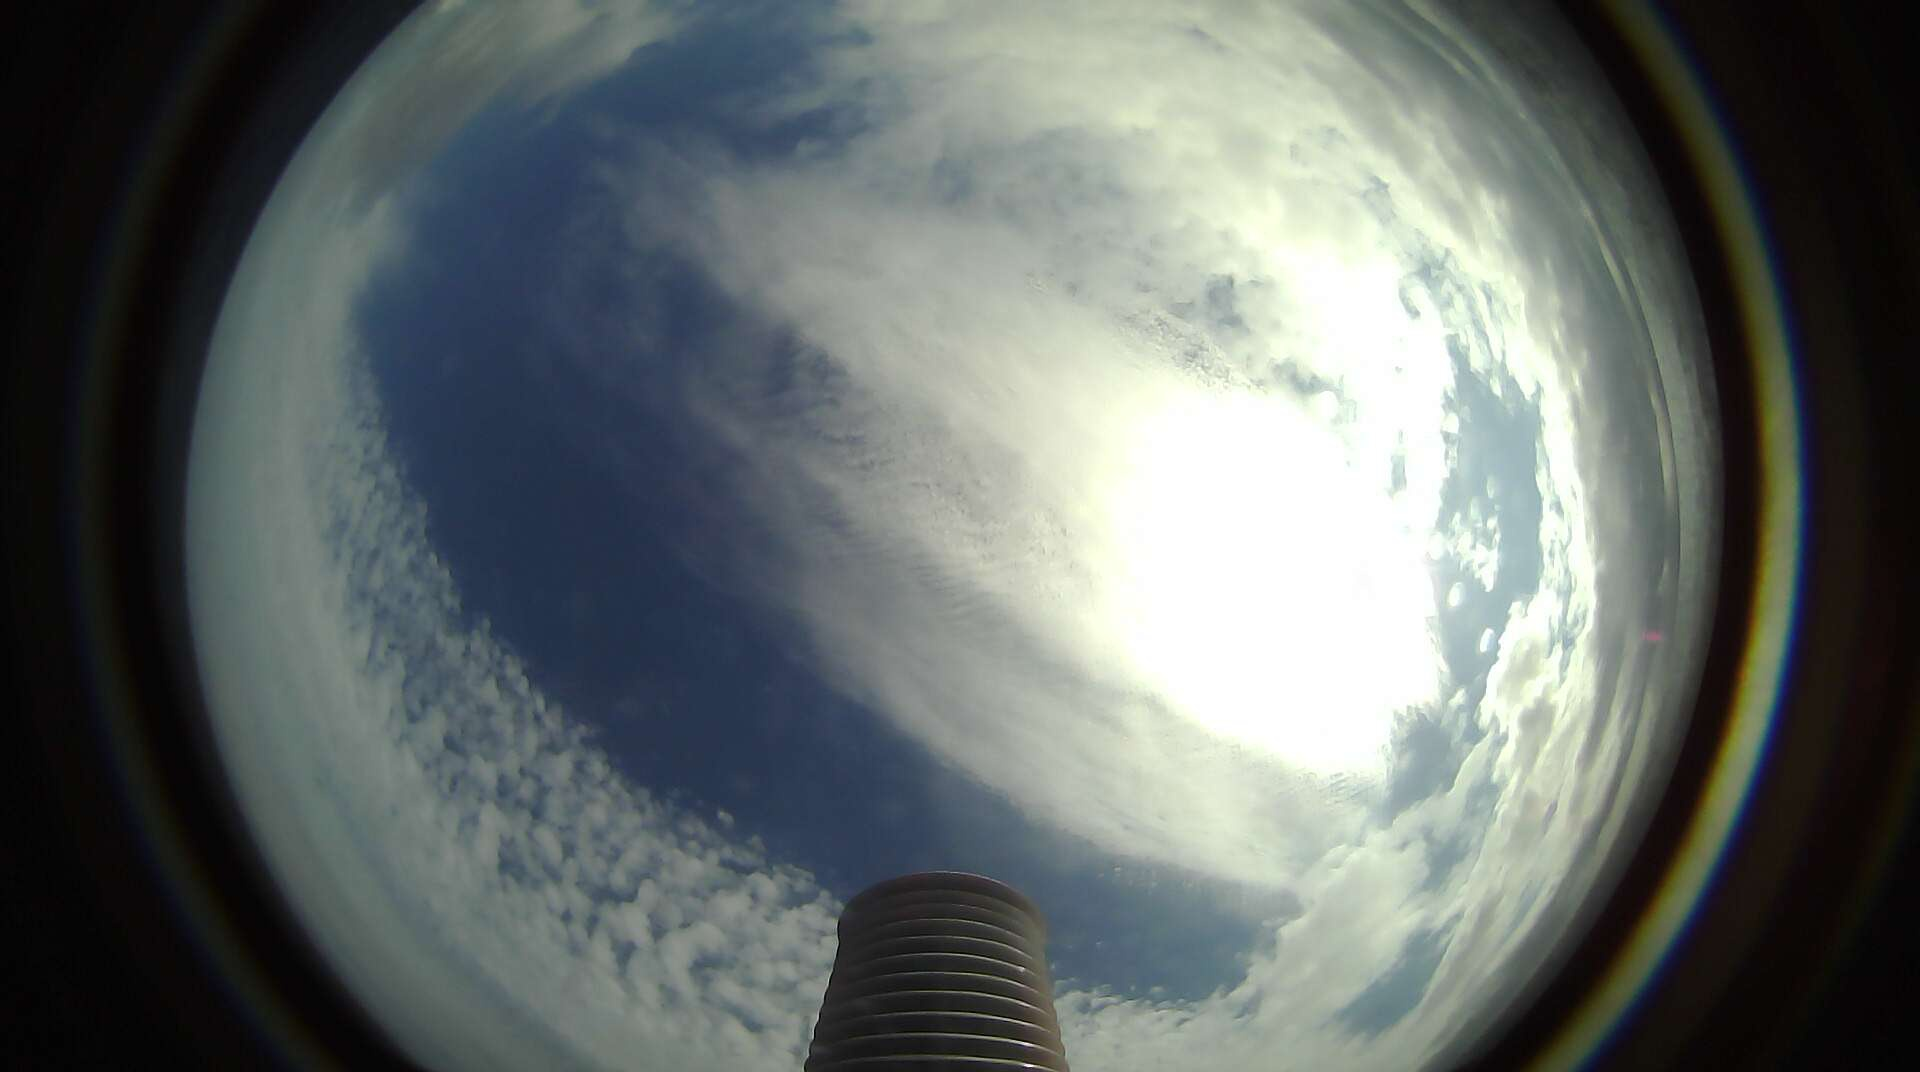 Sky-facing picture taken by SD 1002